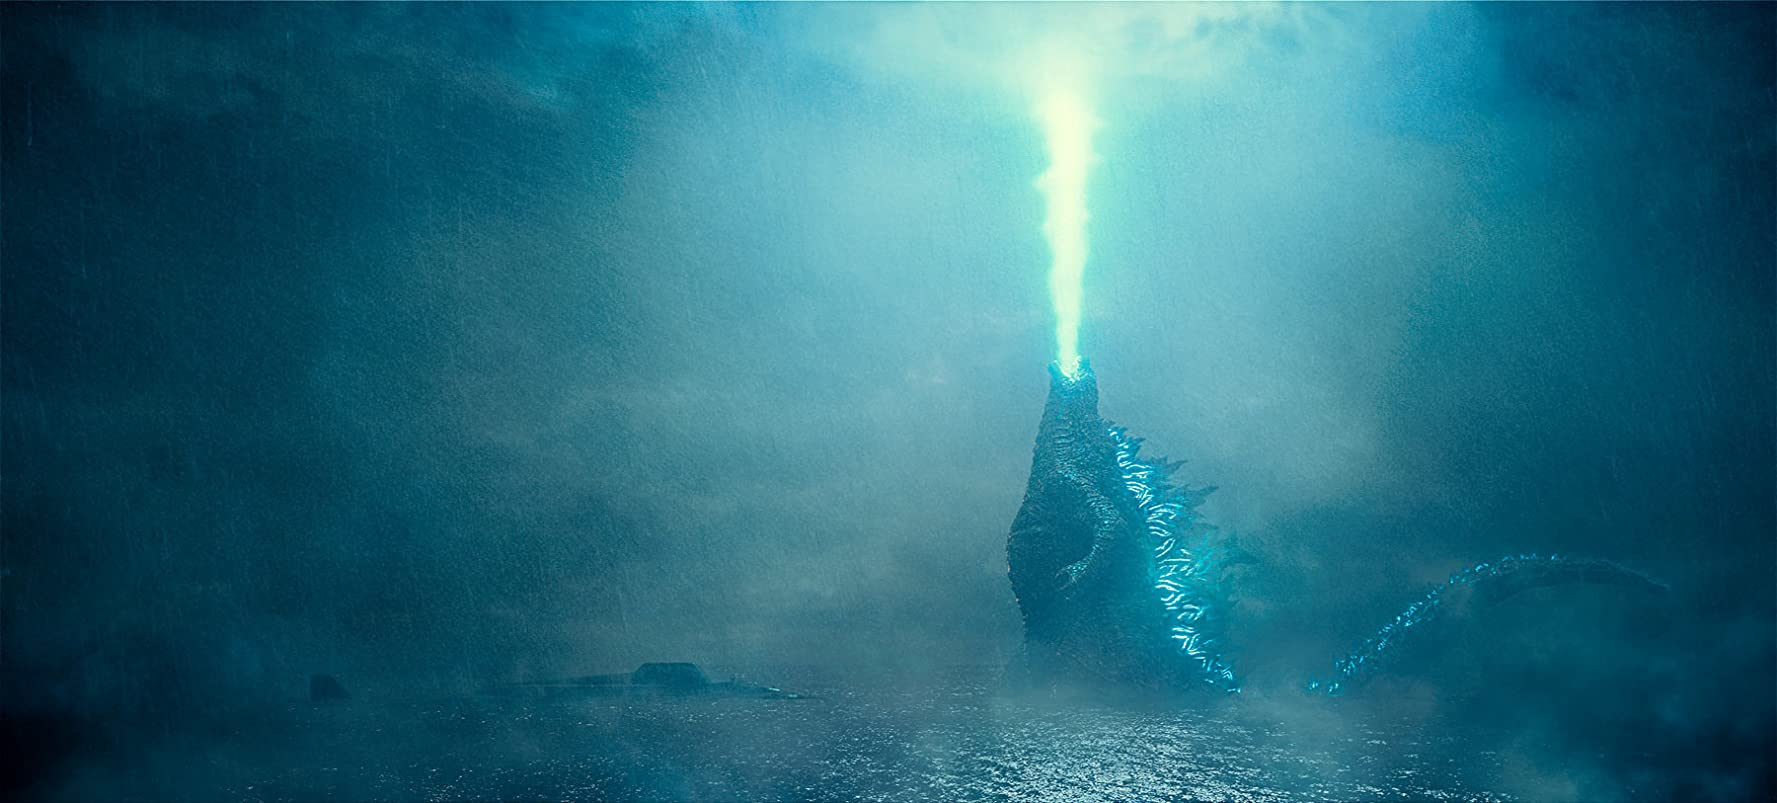 Godzilla in Godzilla: King of the Monsters (2019)